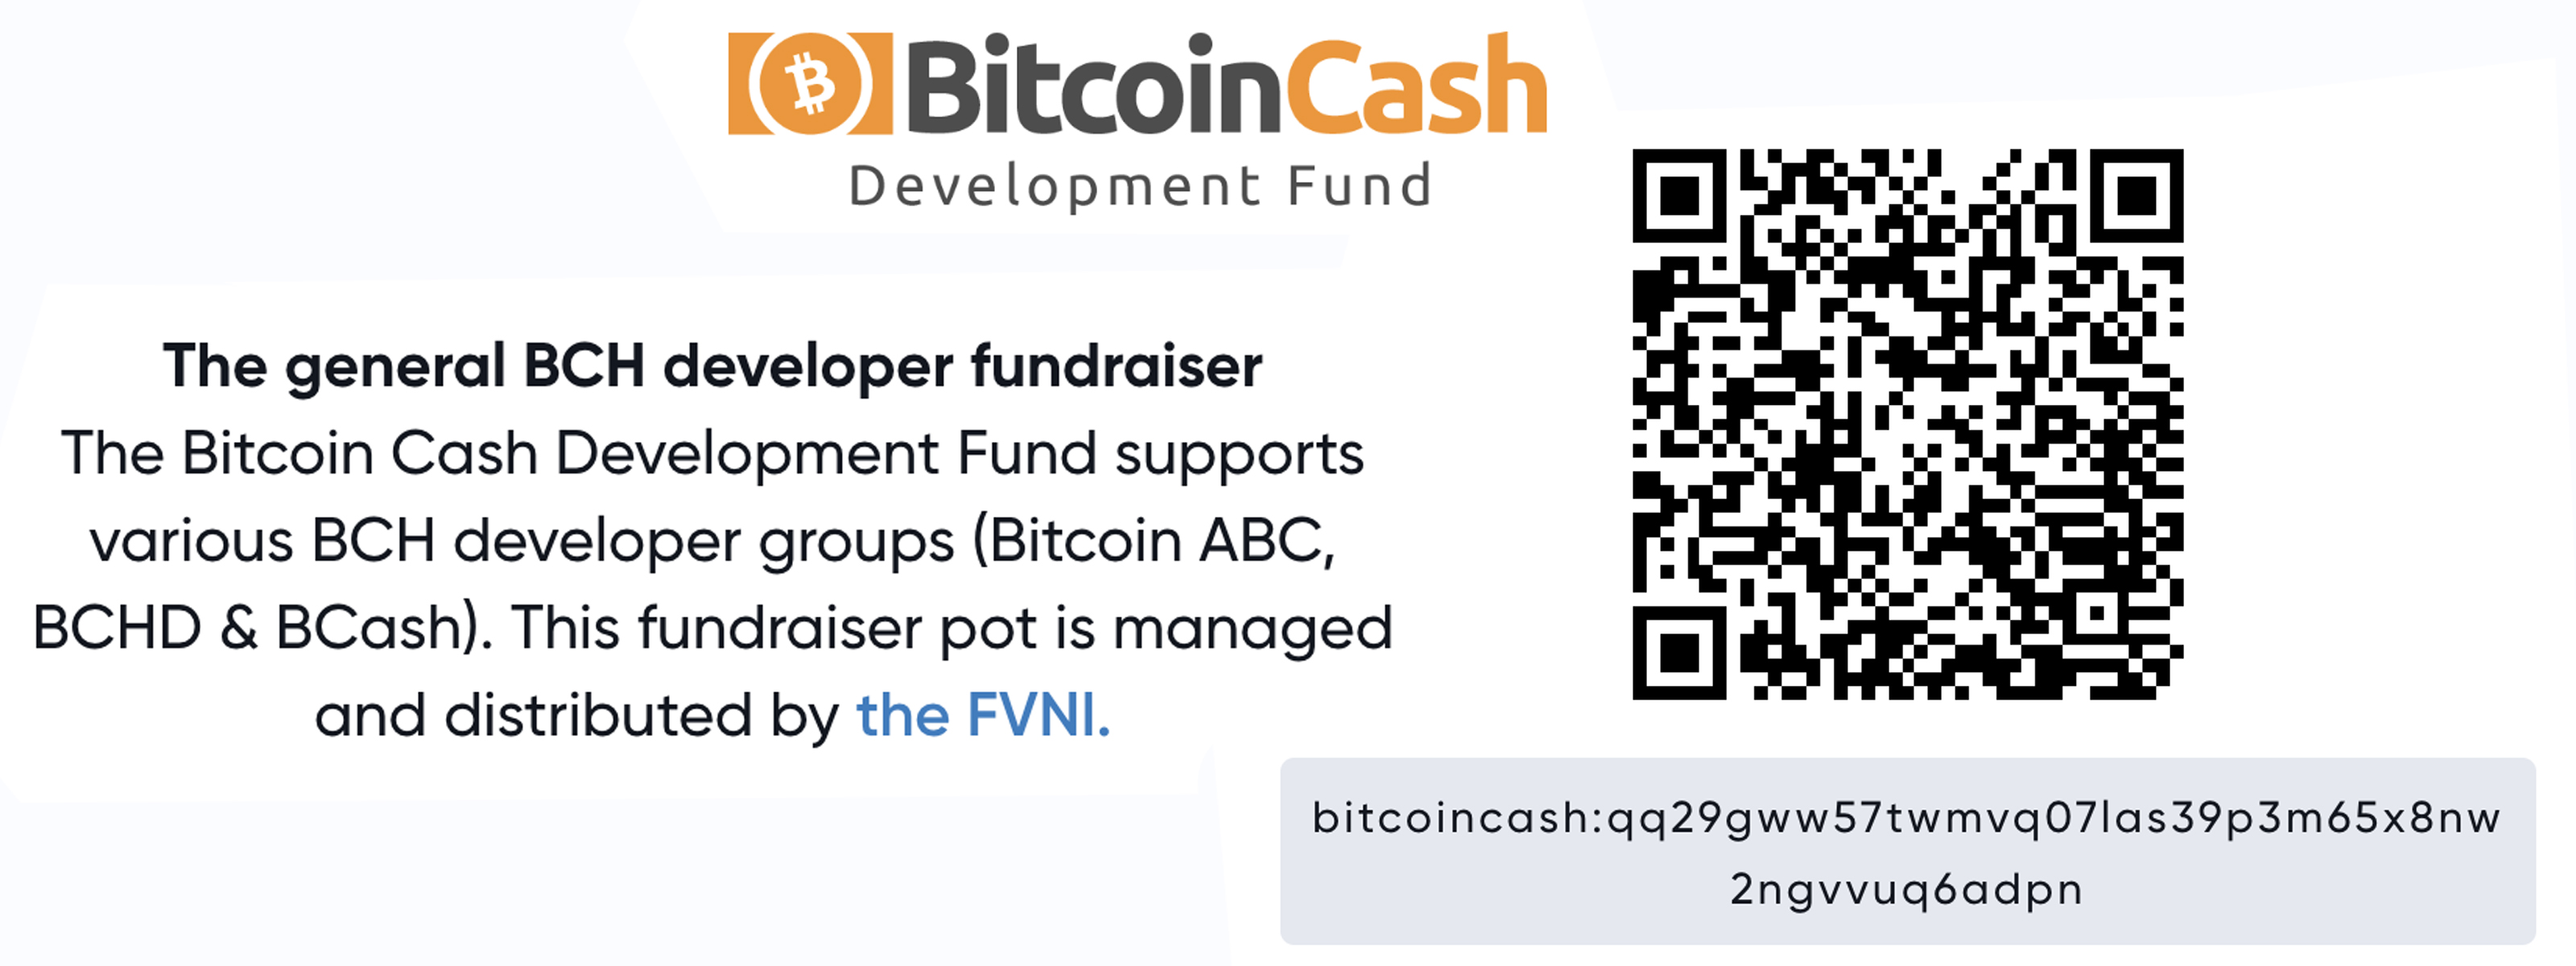 BCH Development Fund Doubles Its Goal After a Successful Month